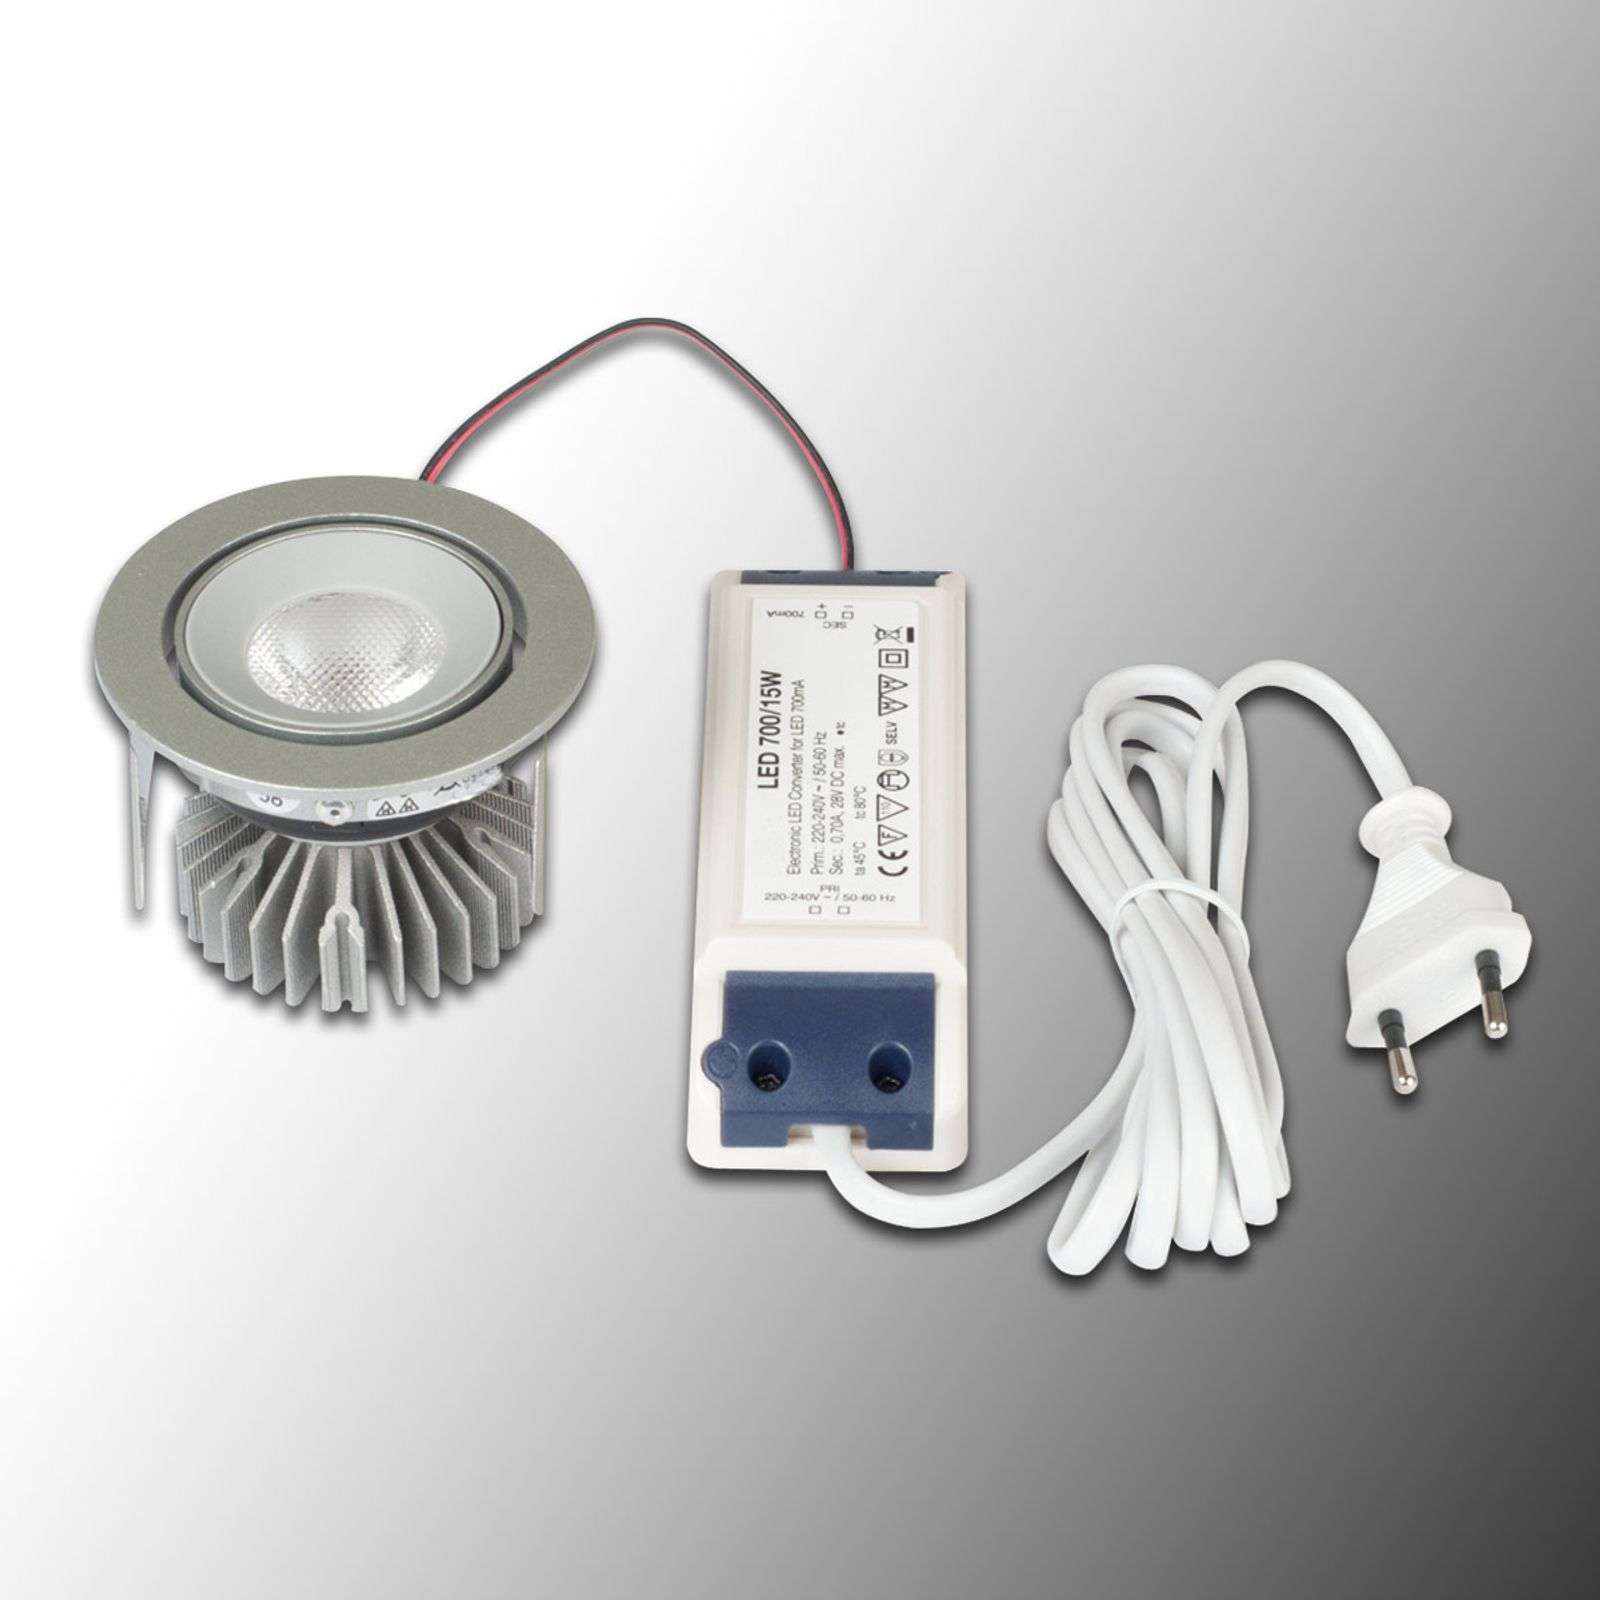 LED recessed light SR 68, 22��, 3000�K